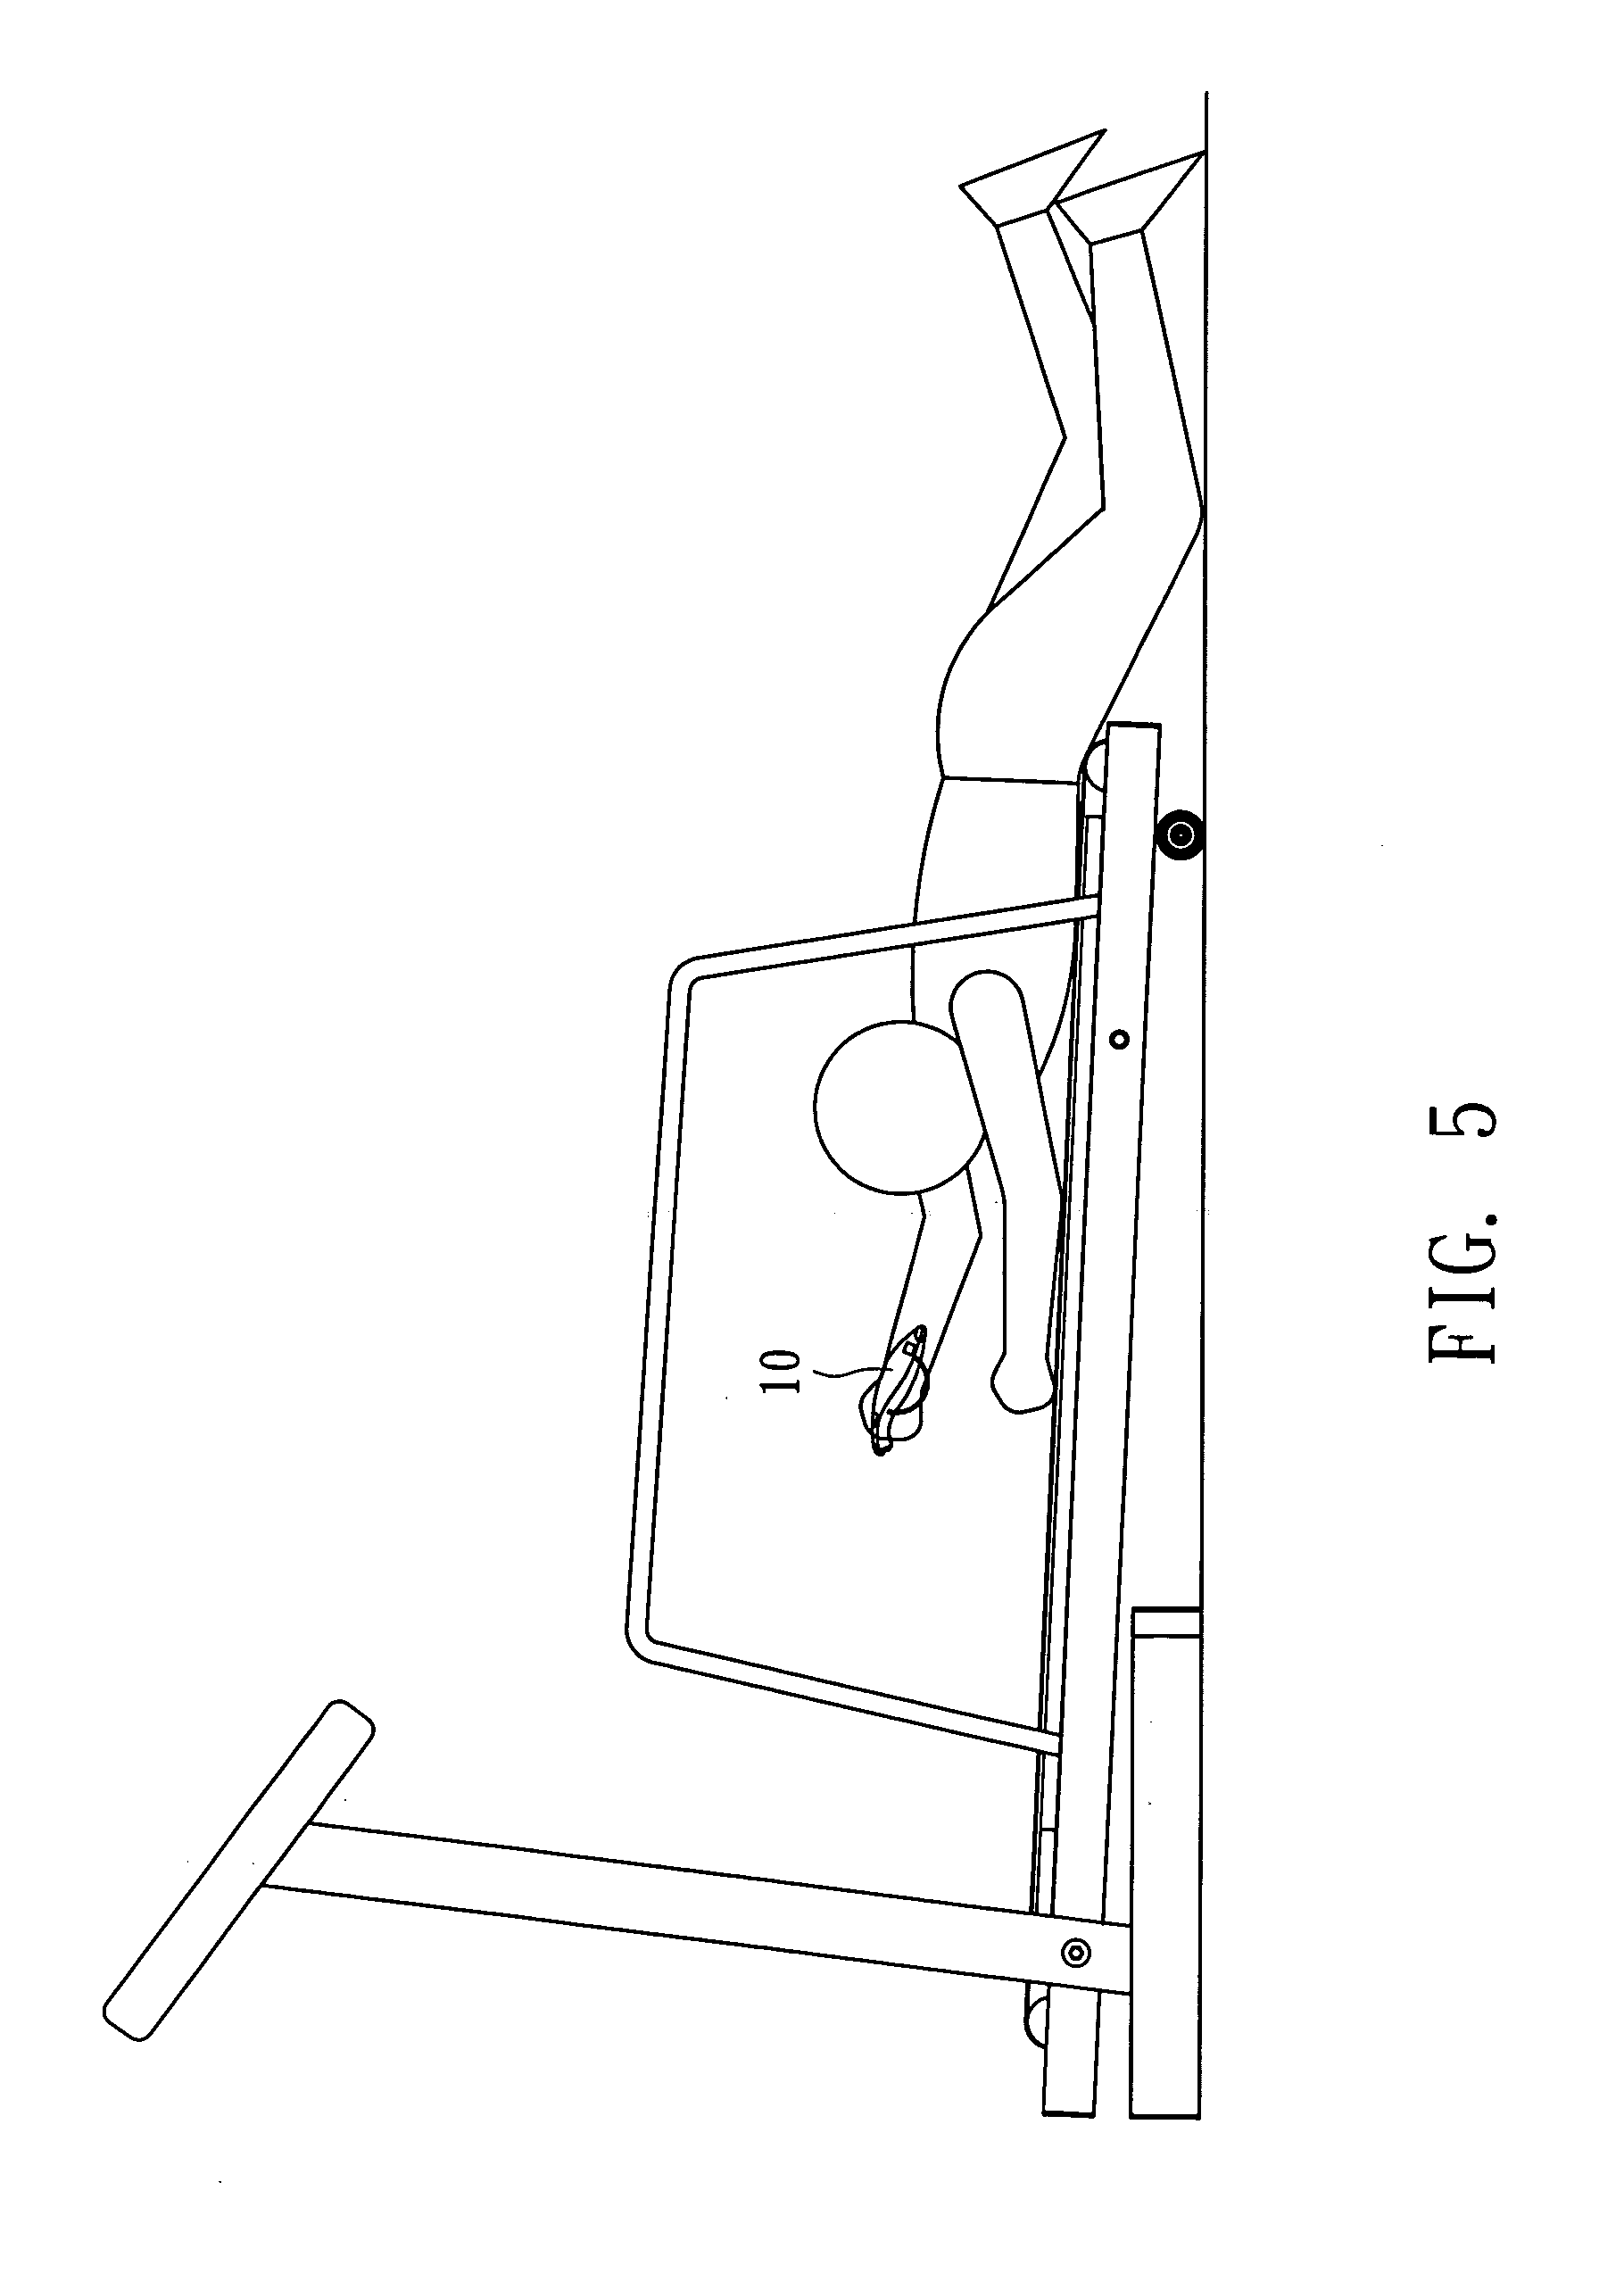 Brevet Us20070004562 Remote Control Of Treadmill Google Brevets Opel Vectra B Circuit Diagram Patent Drawing